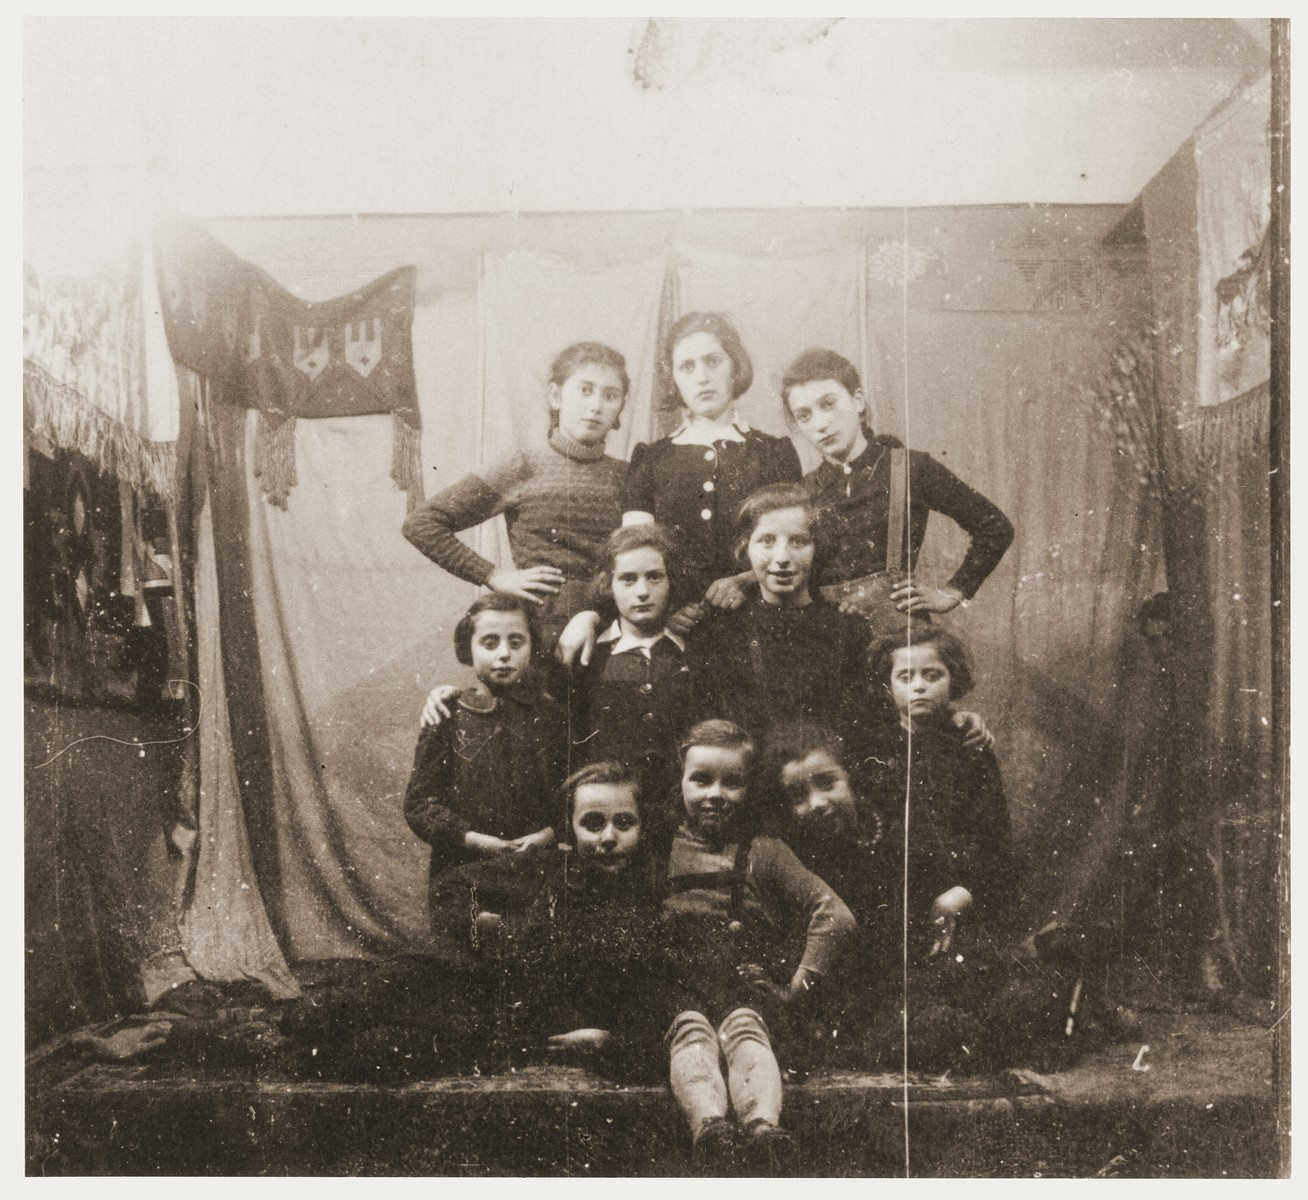 Group portrait of Jewish children in front of a stage set at a Purim celebration in the Zabno ghetto.